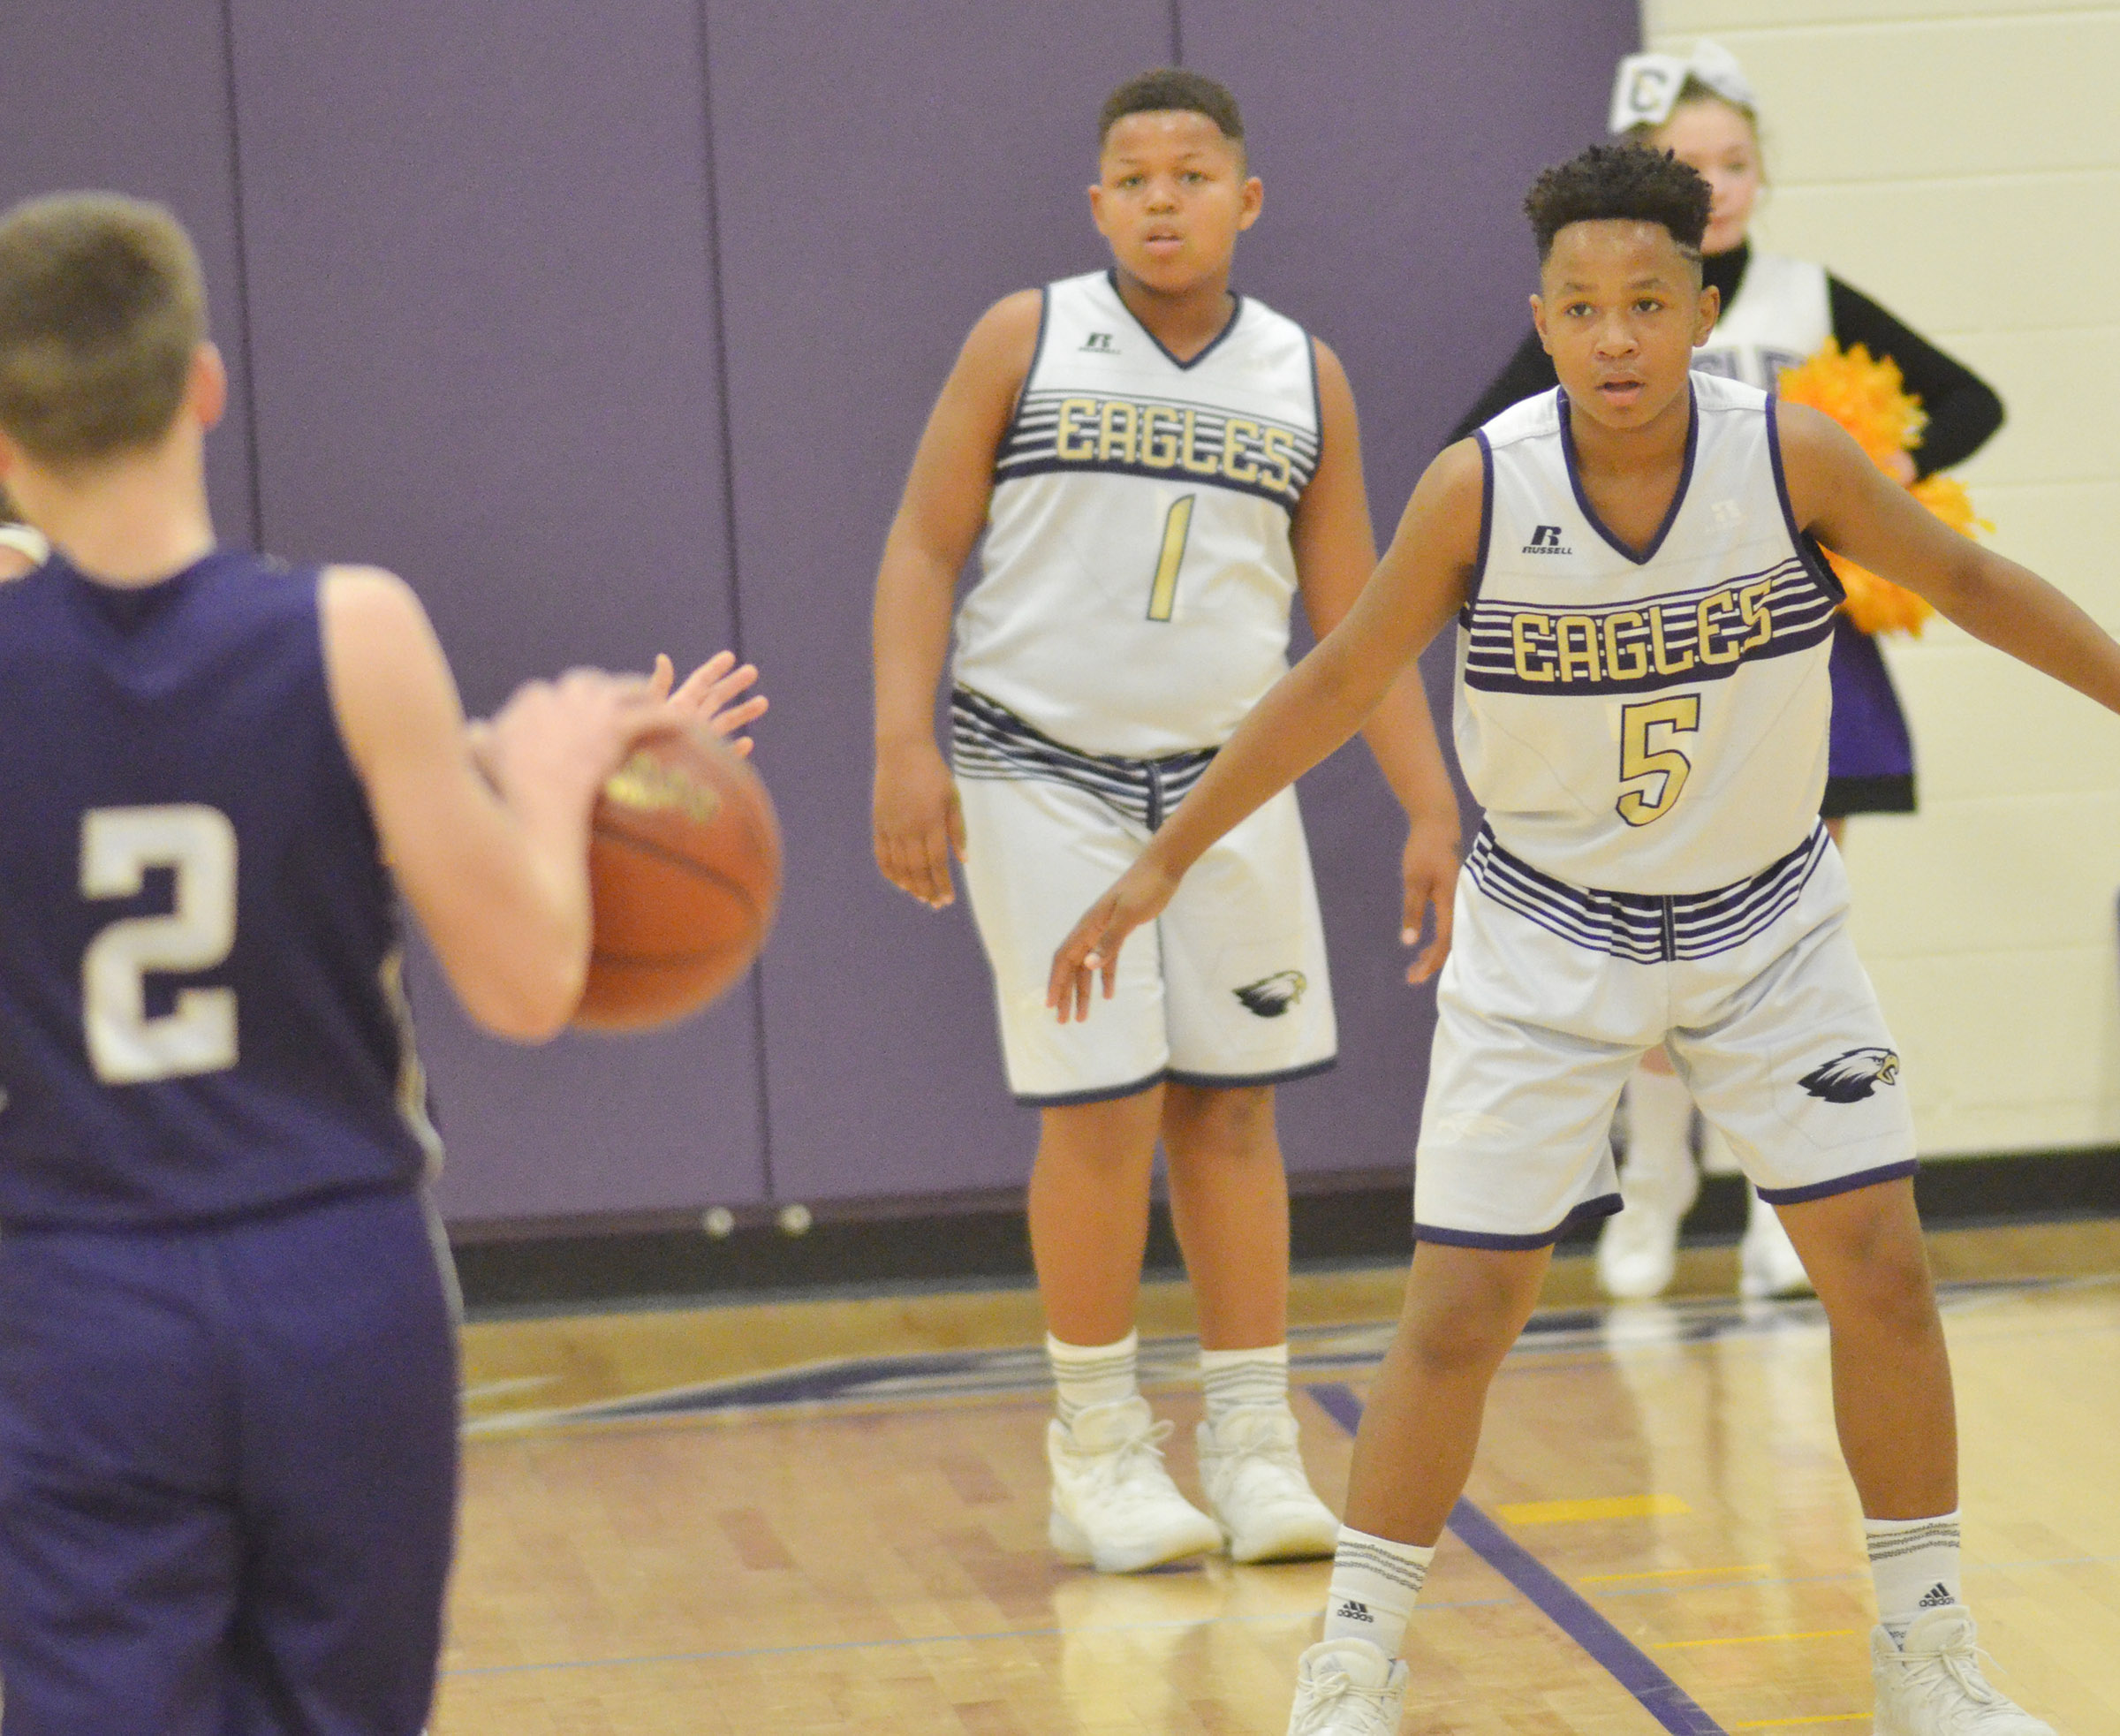 CMS seventh-graders Keondre Weathers, at left, and his brother Deondre Weathers play defense.